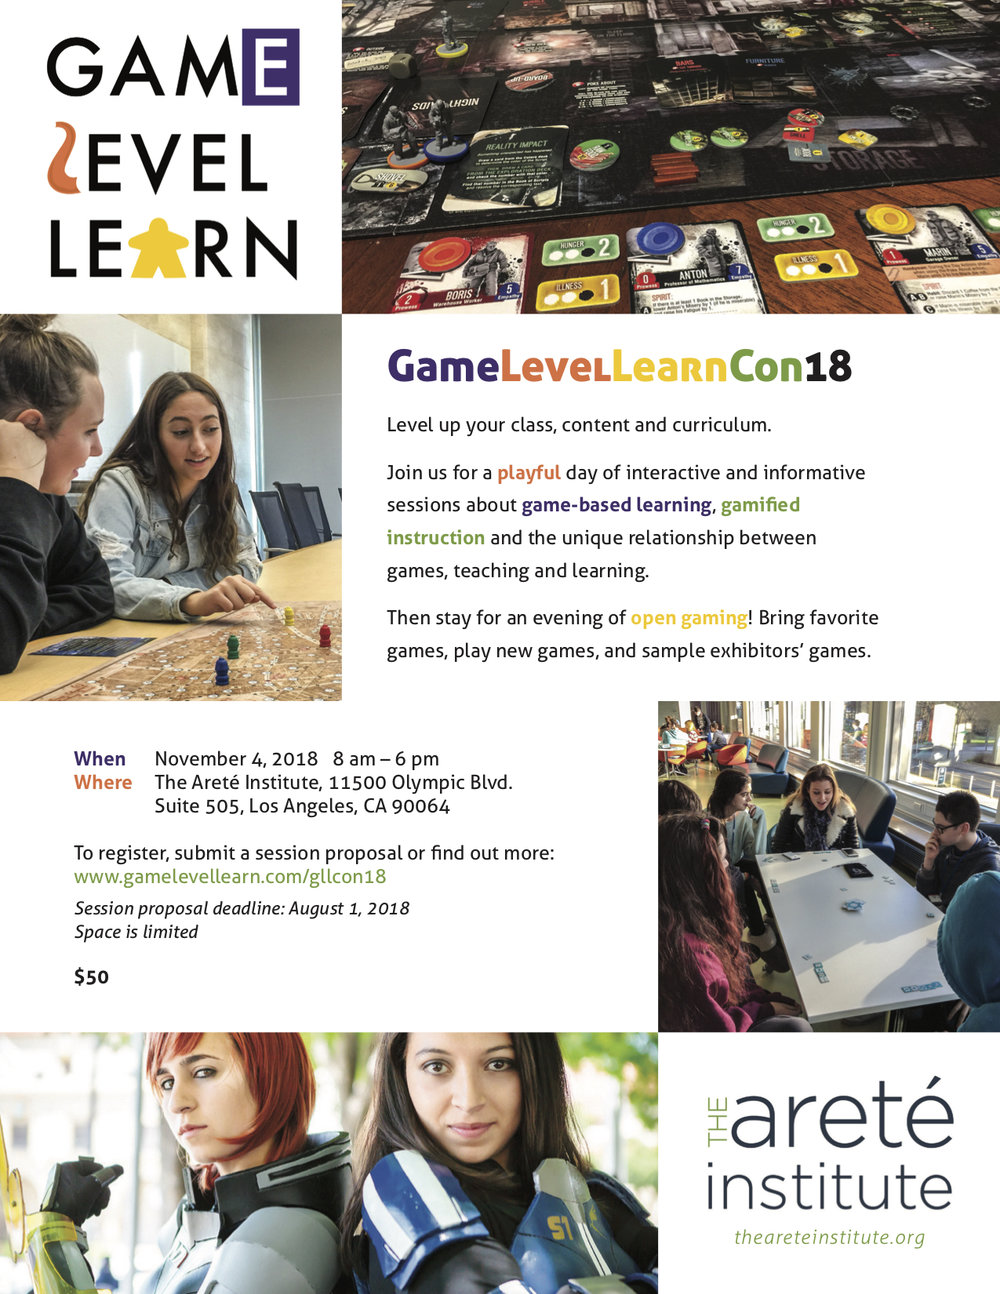 Game Level Learn Con 18 — Game Level Learn